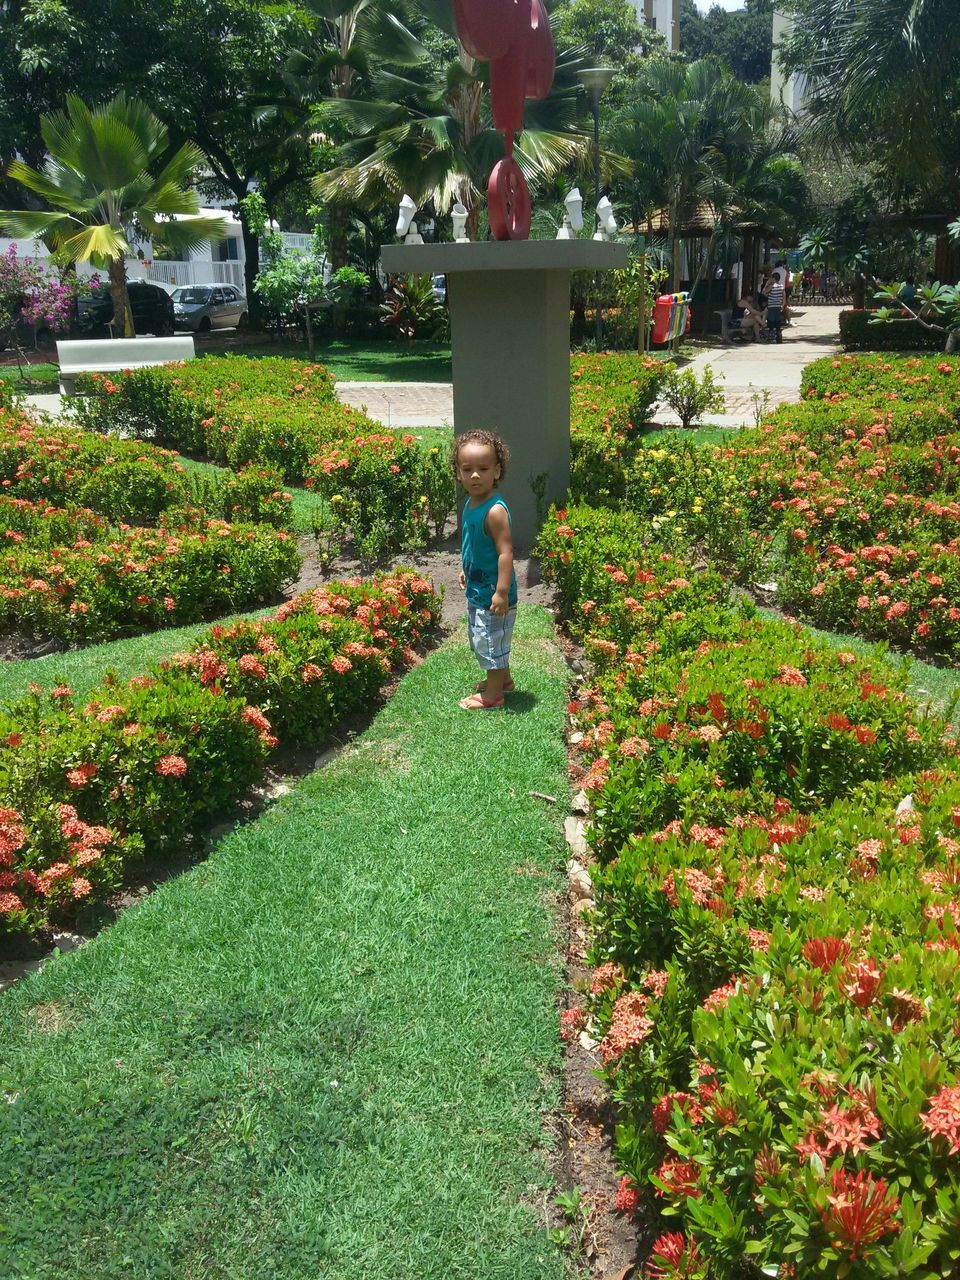 Baby Boy Standing By Sculpture Amidst Plants At Park